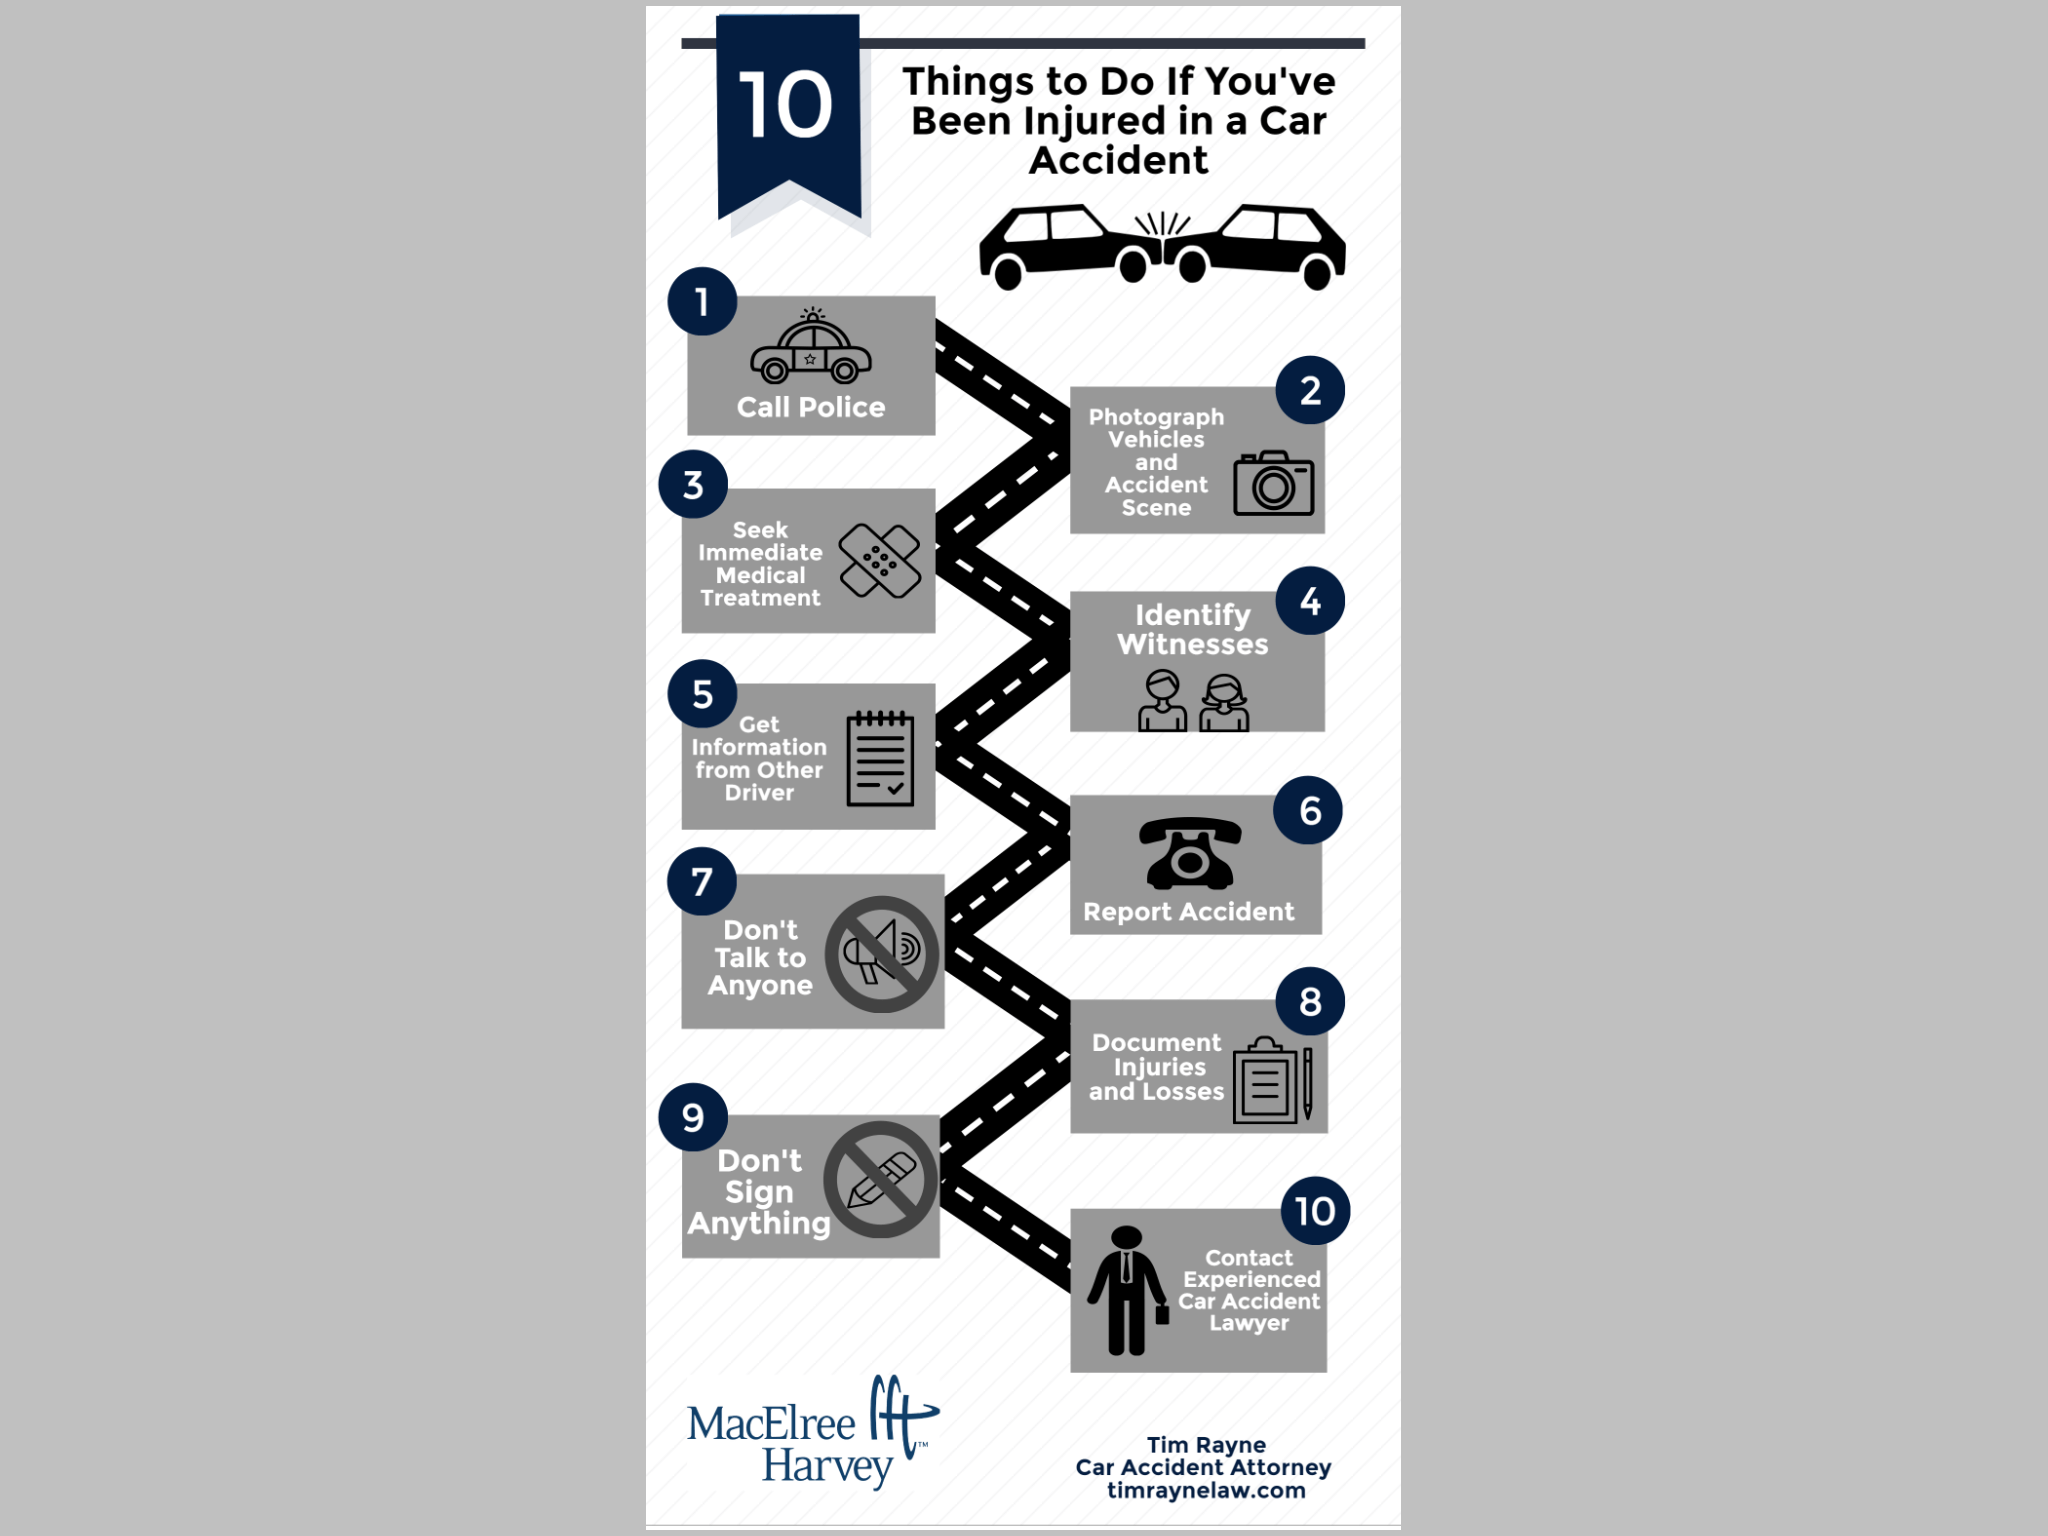 10 Steps to follow after being injured in a Pennsylvania car accident